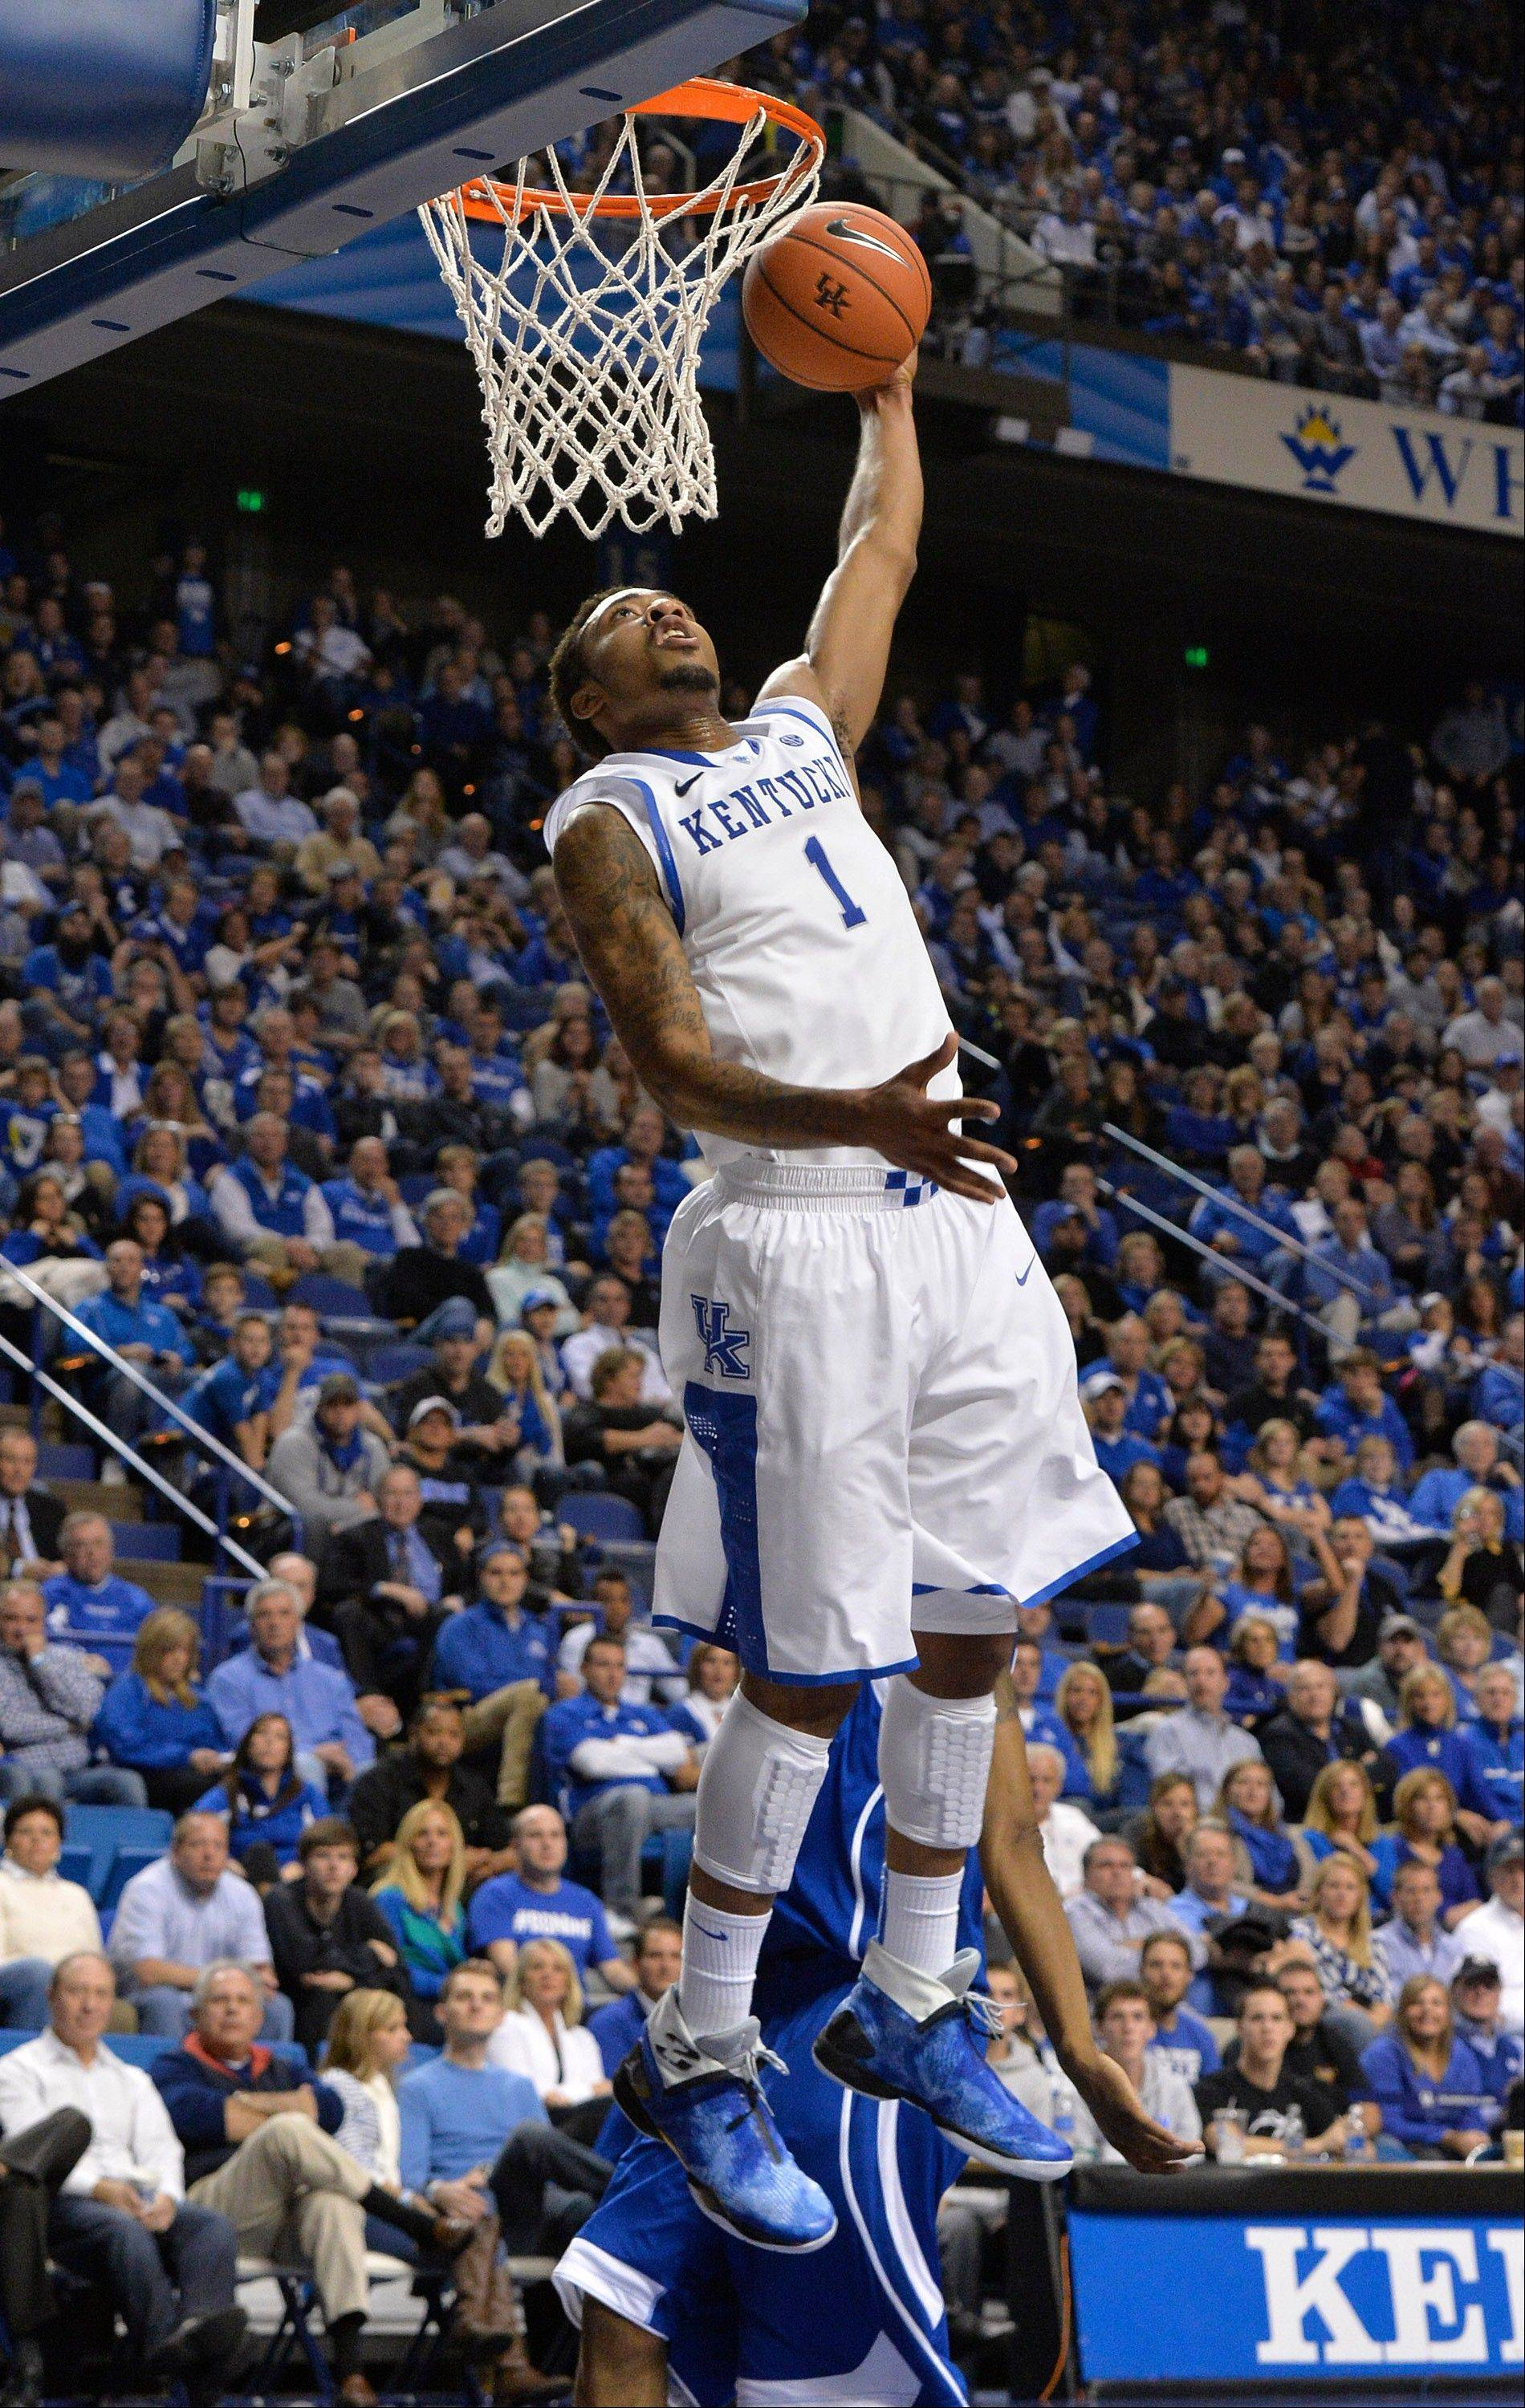 Kentucky's James Young goes up for a dunk during the second half of Friday's game against UNC Asheville in Lexington, Ky. Kentucky defeated UNC Asheville 89-57.